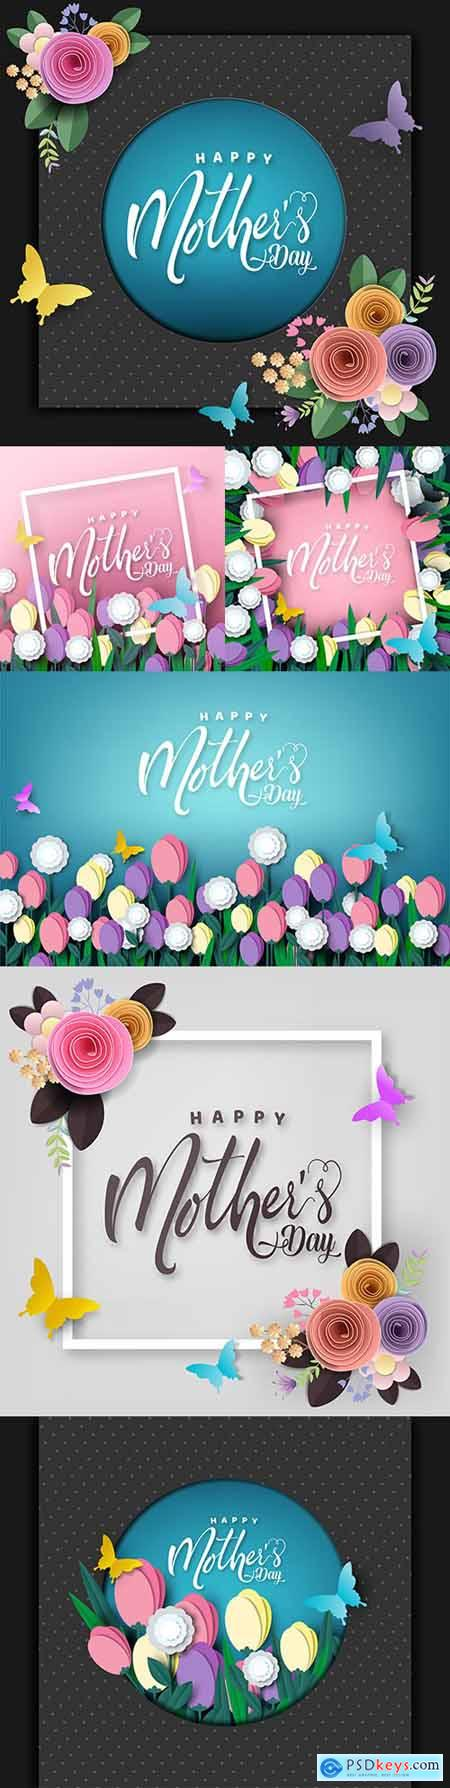 Mother s day card design butterfly paper flowers